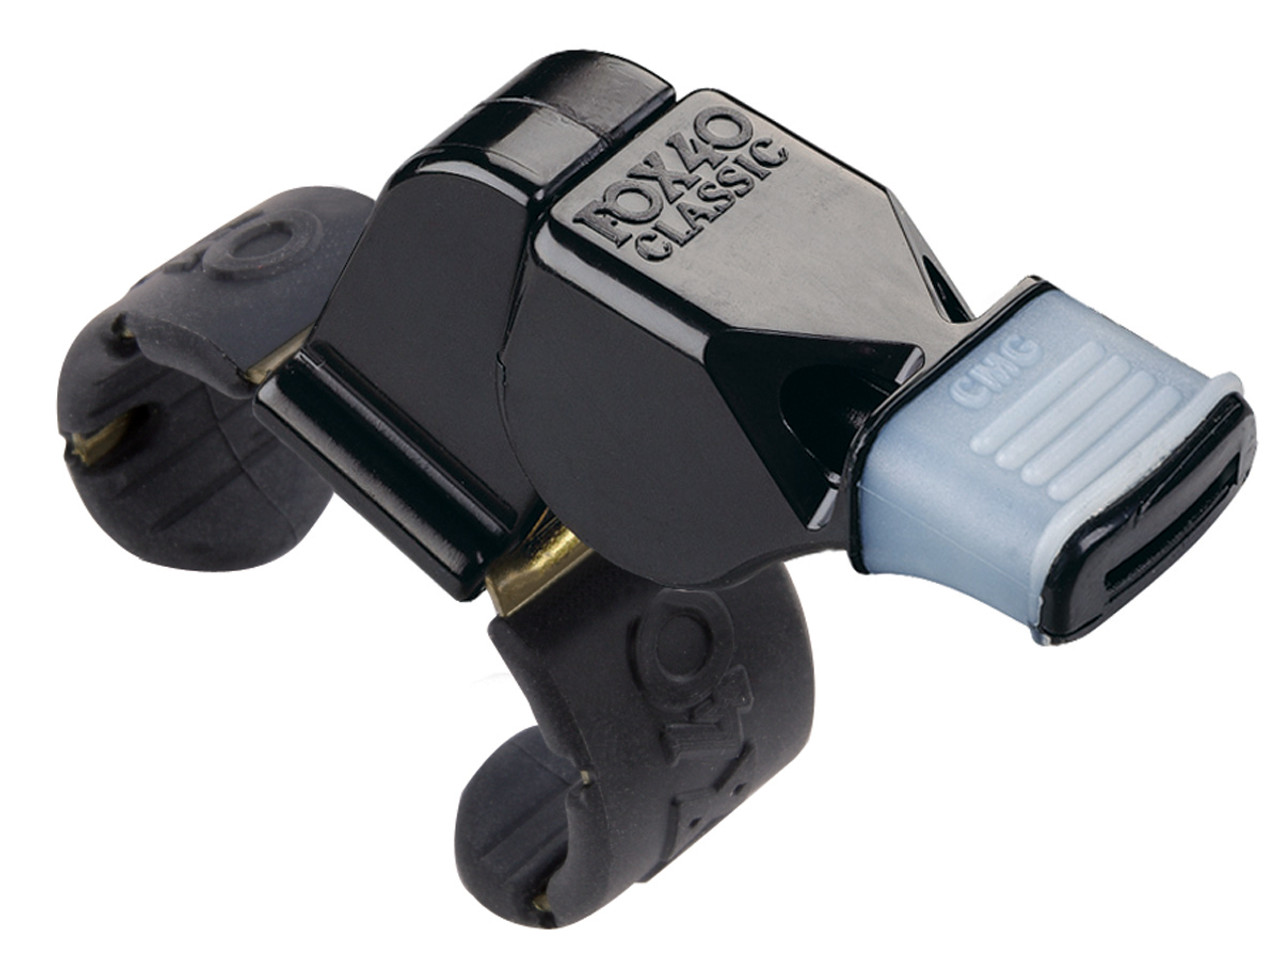 Image result for fox 40 classic cmg official finger grip whistle